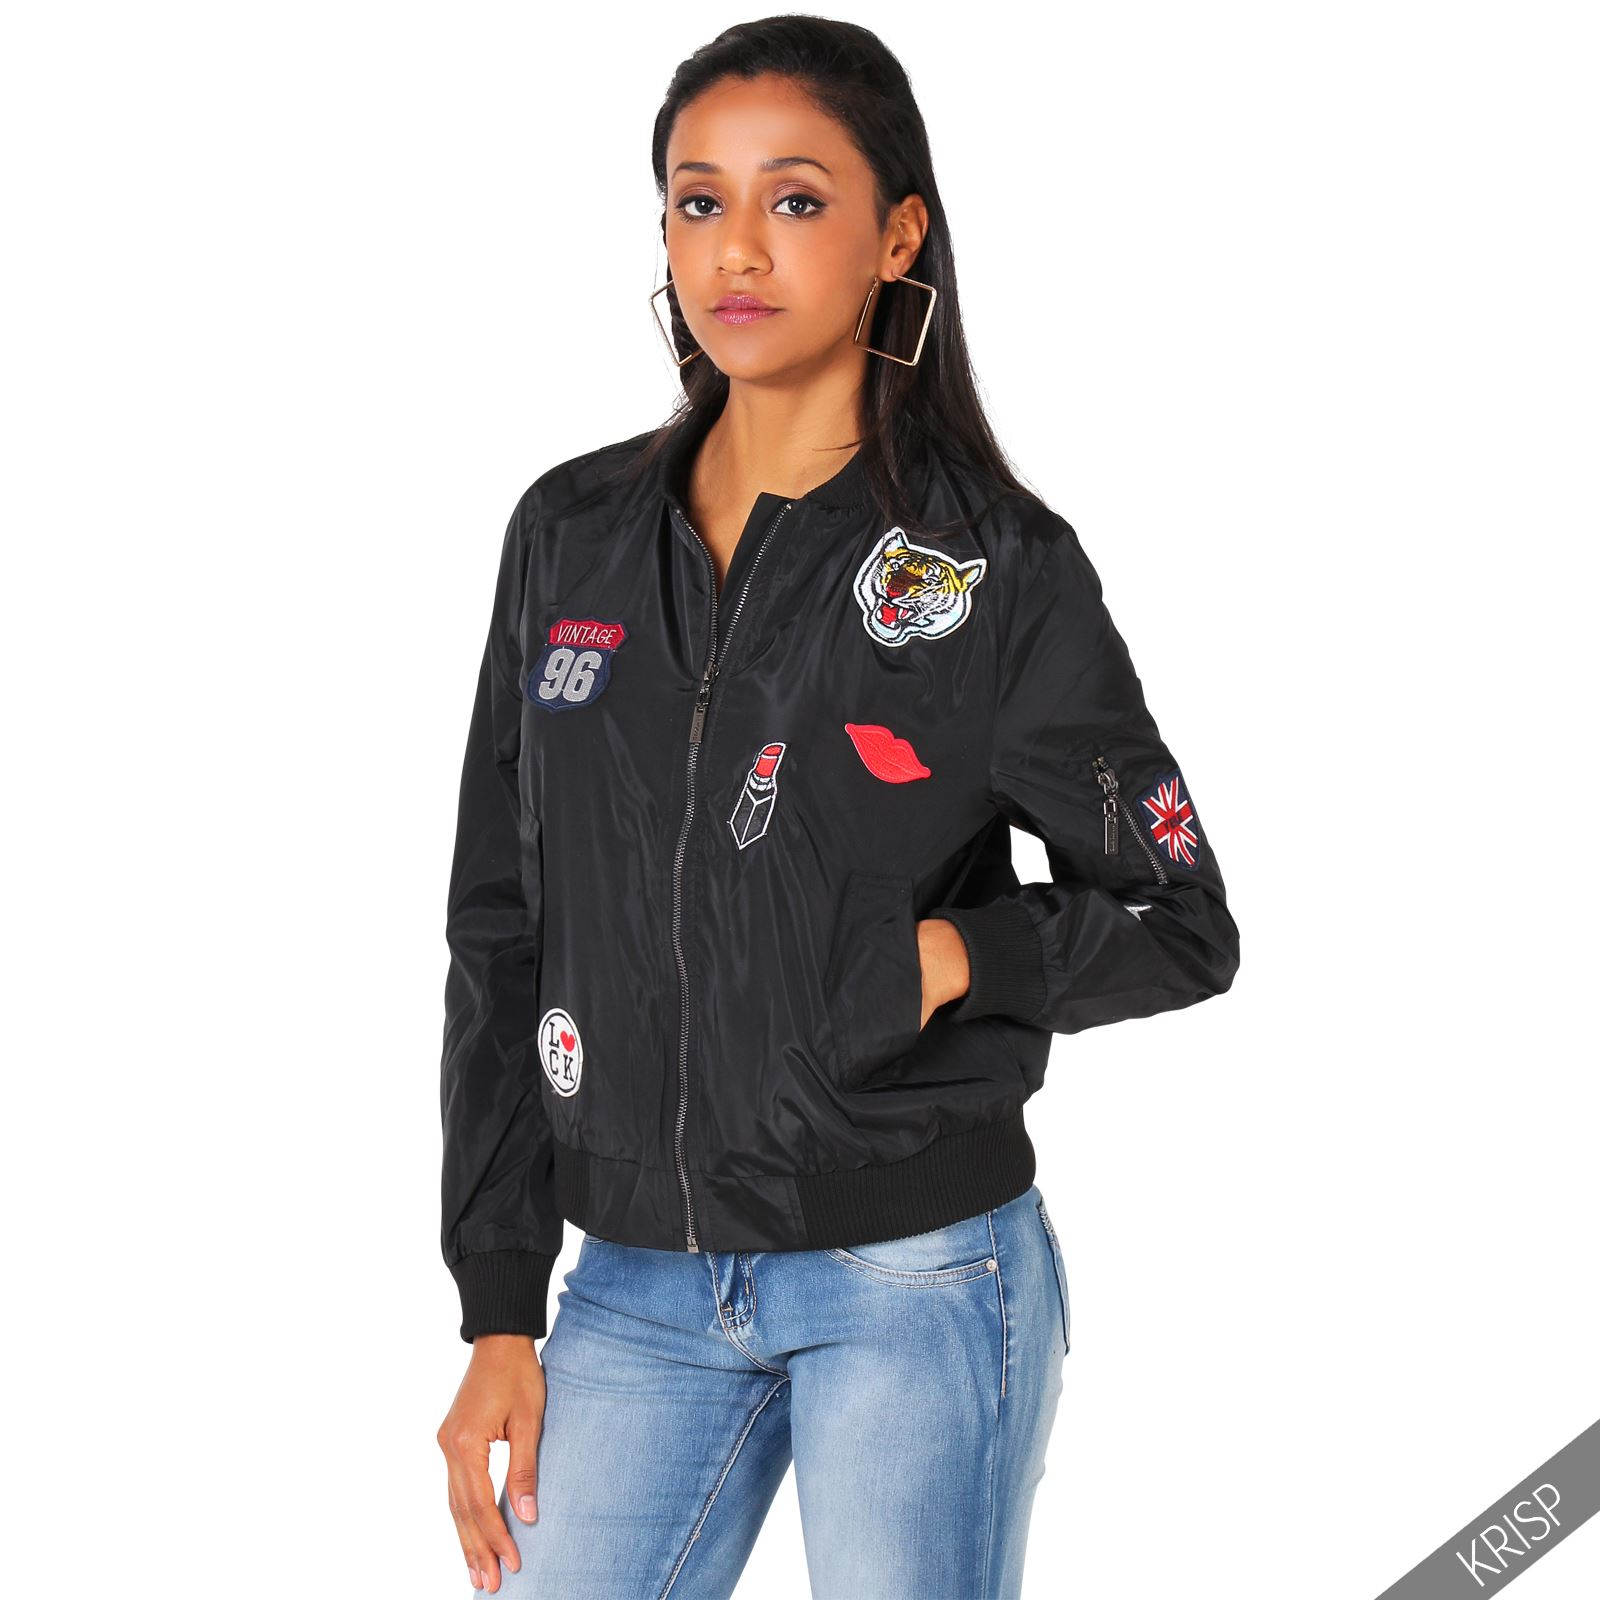 Womens Classic Army Patch Bomber Jacket Vintage Military Light Summer Biker Coat | EBay